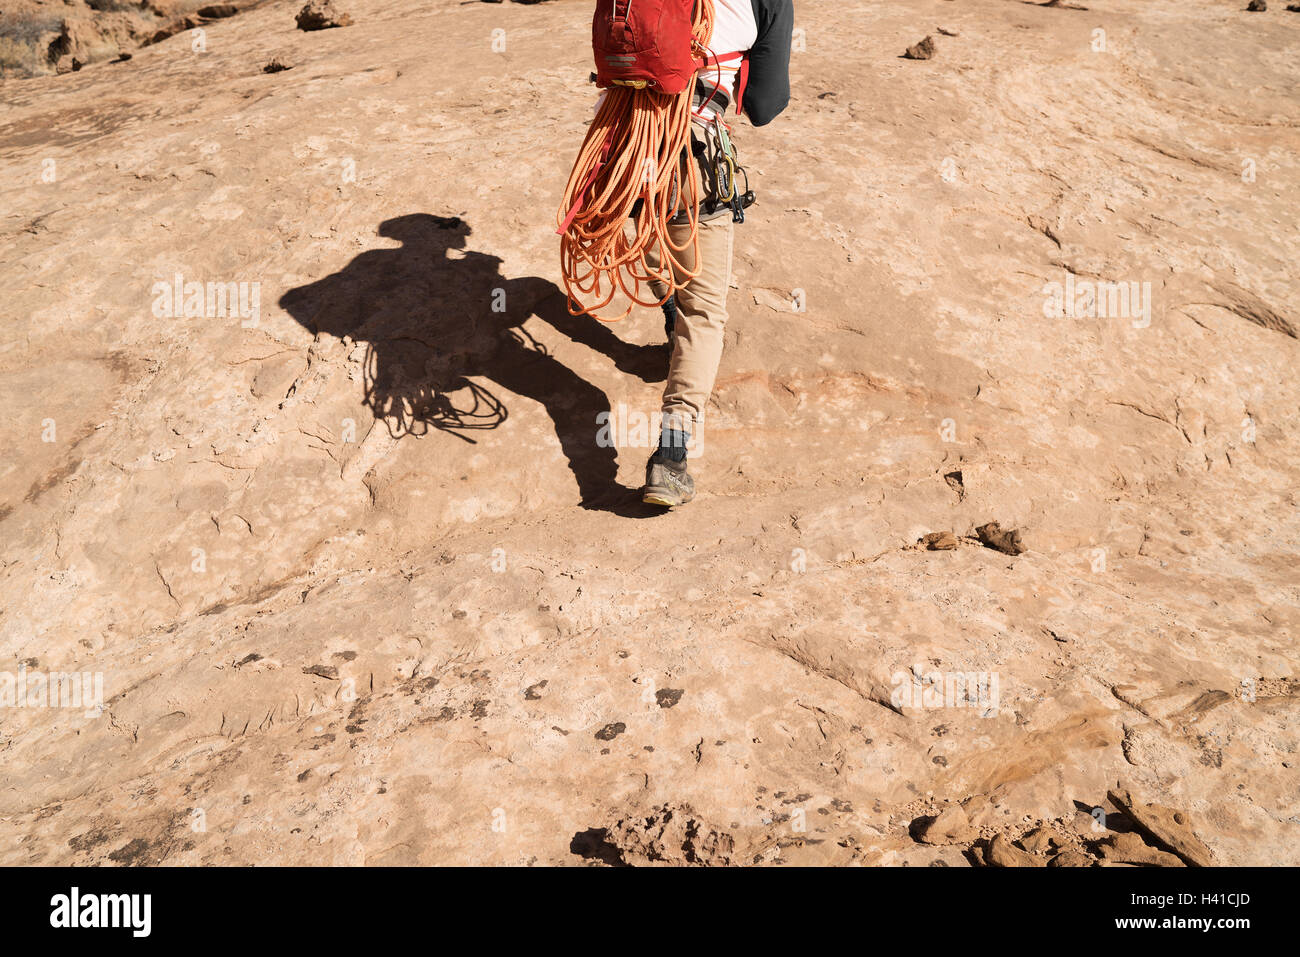 A man prepares to rappel down a canyon in southern Utah - Stock Image